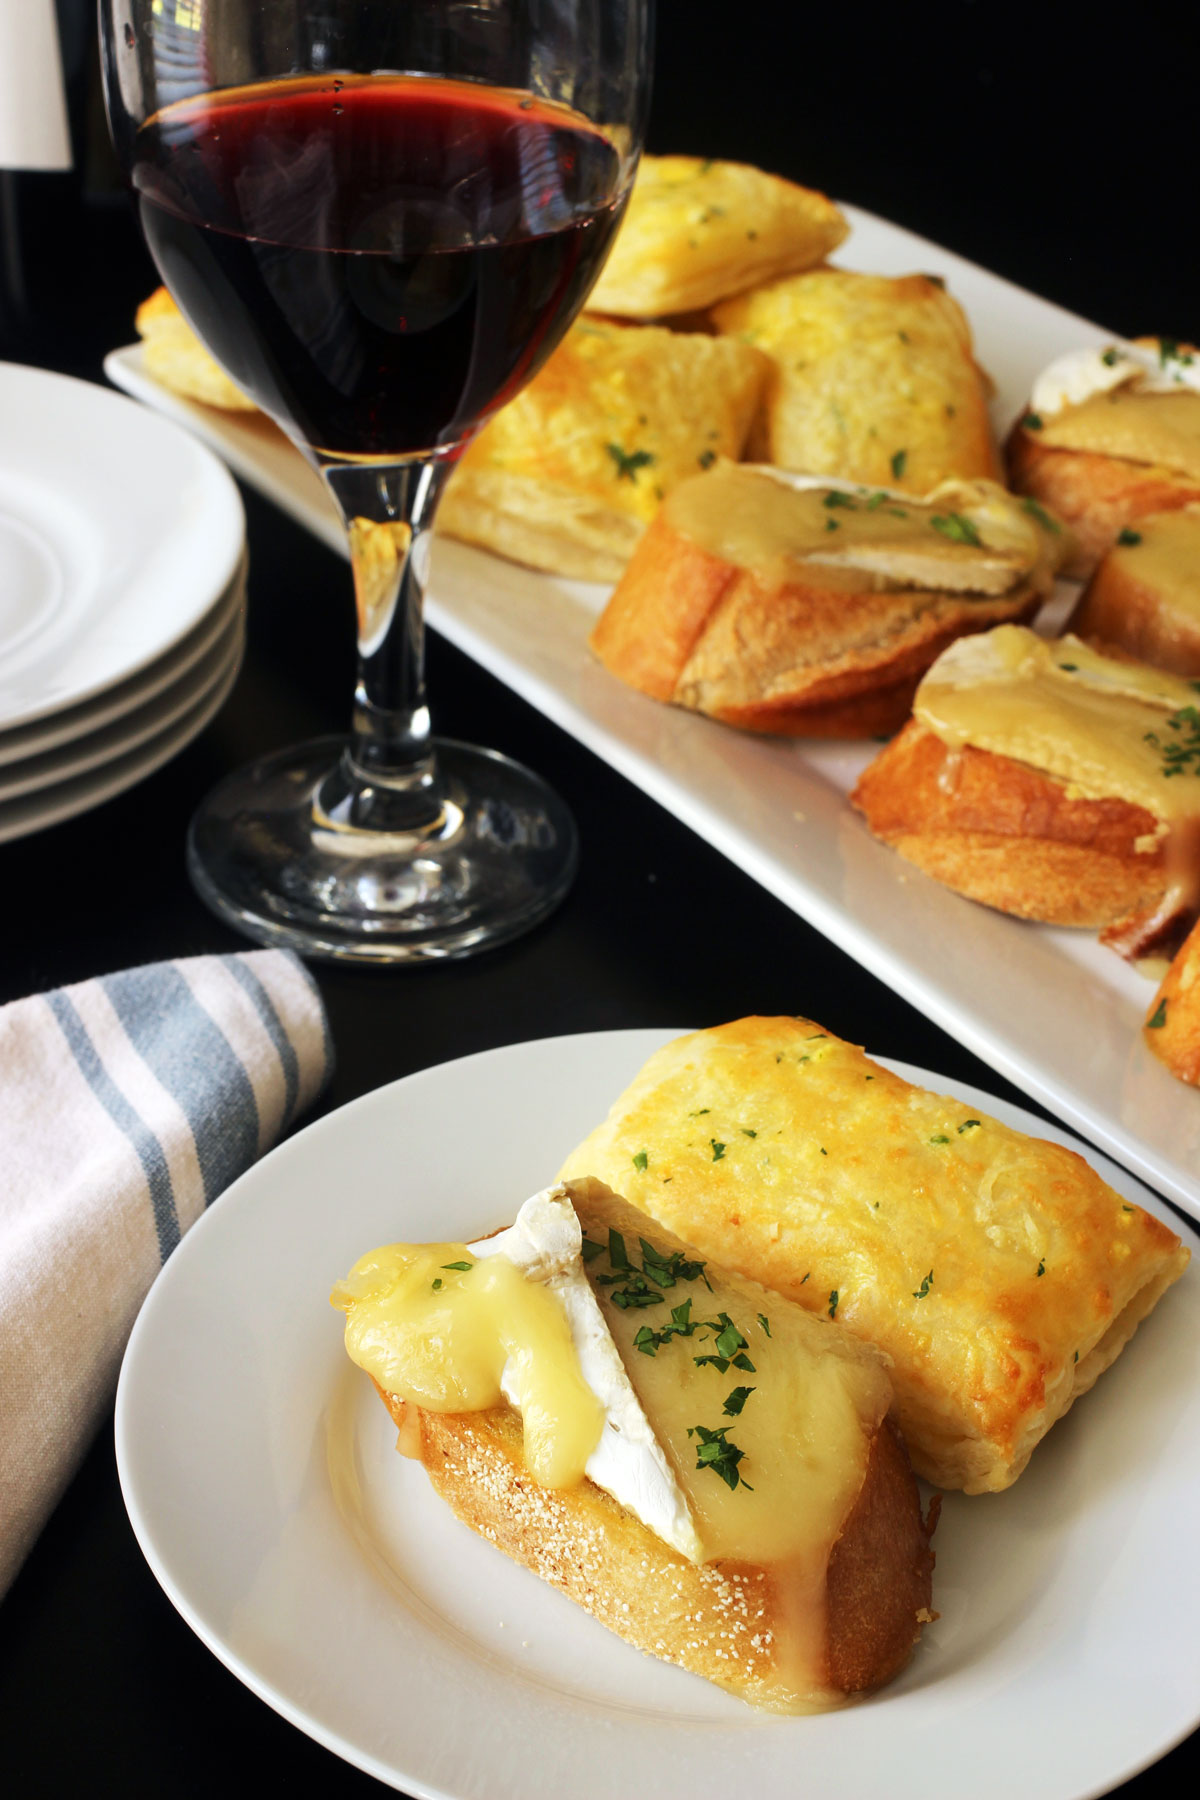 brie toast and cheese puff on plate with glass of wine